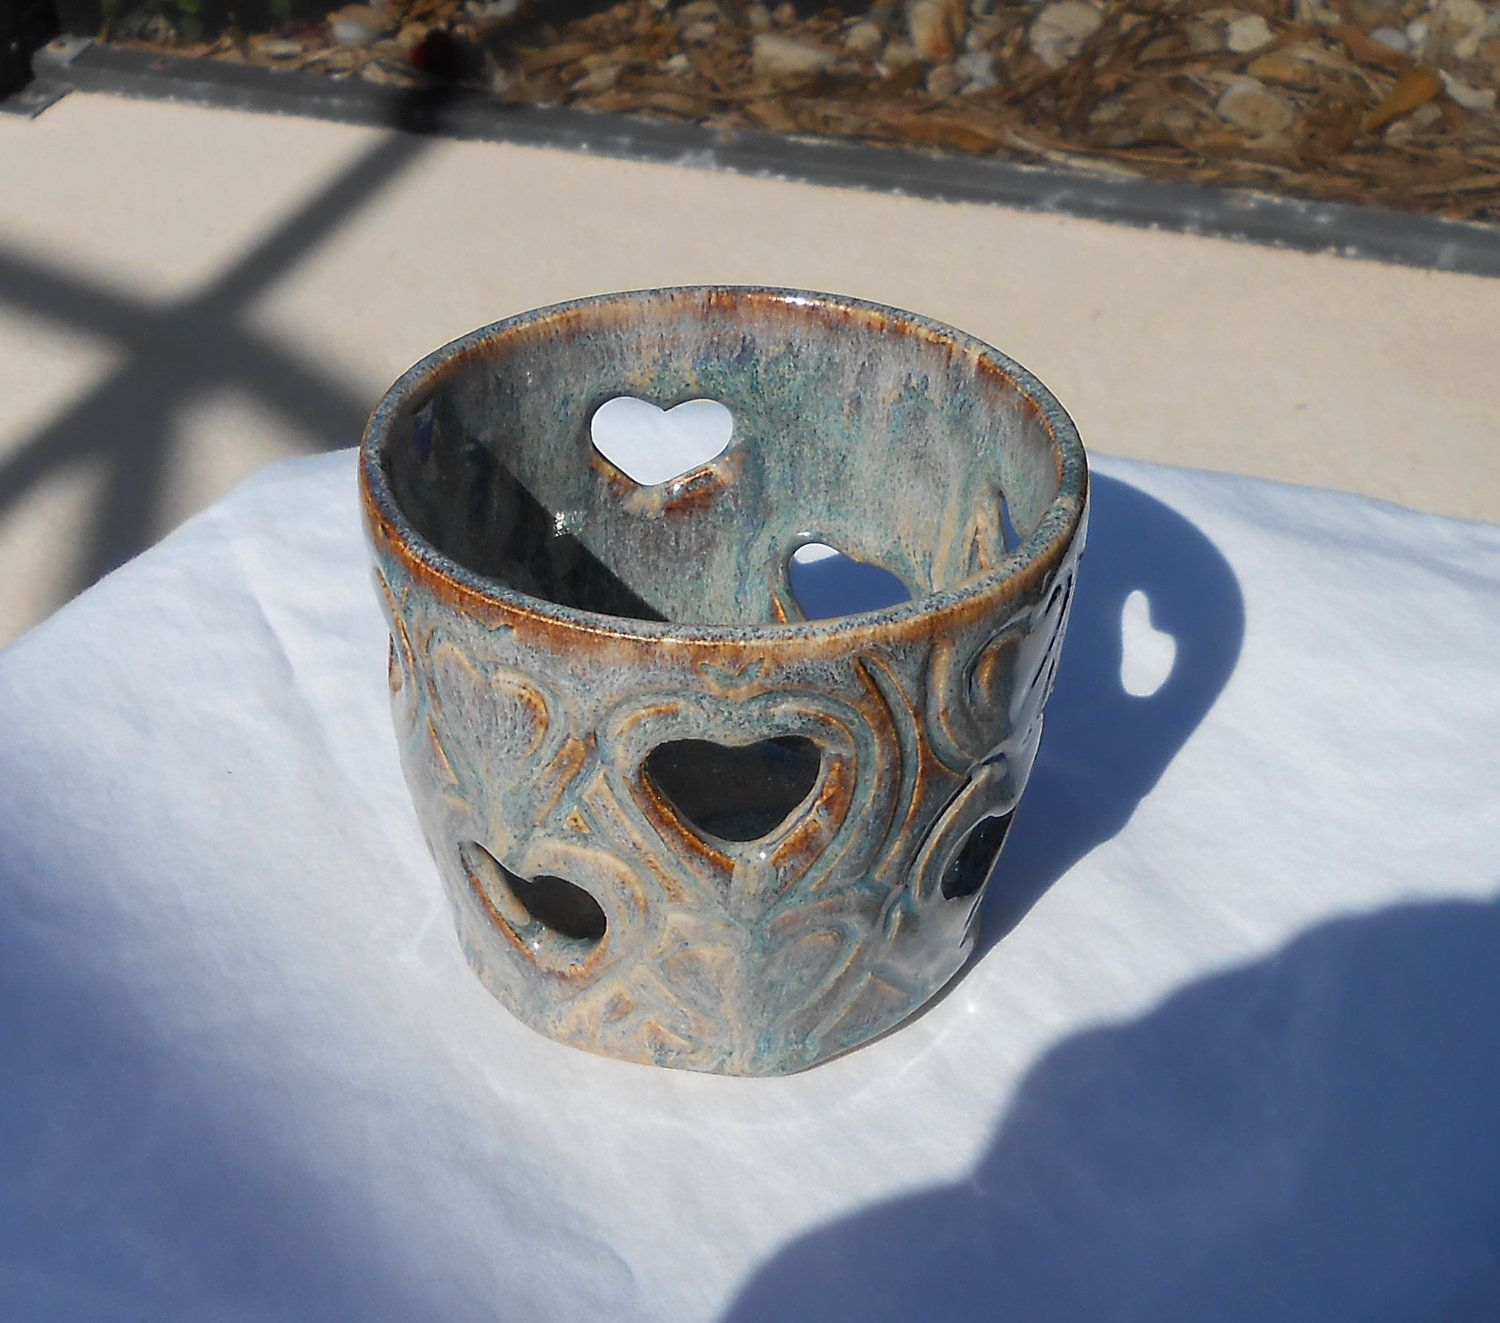 Small Candle Holder in Blue Cr¨me and Brown with Heart Etchings